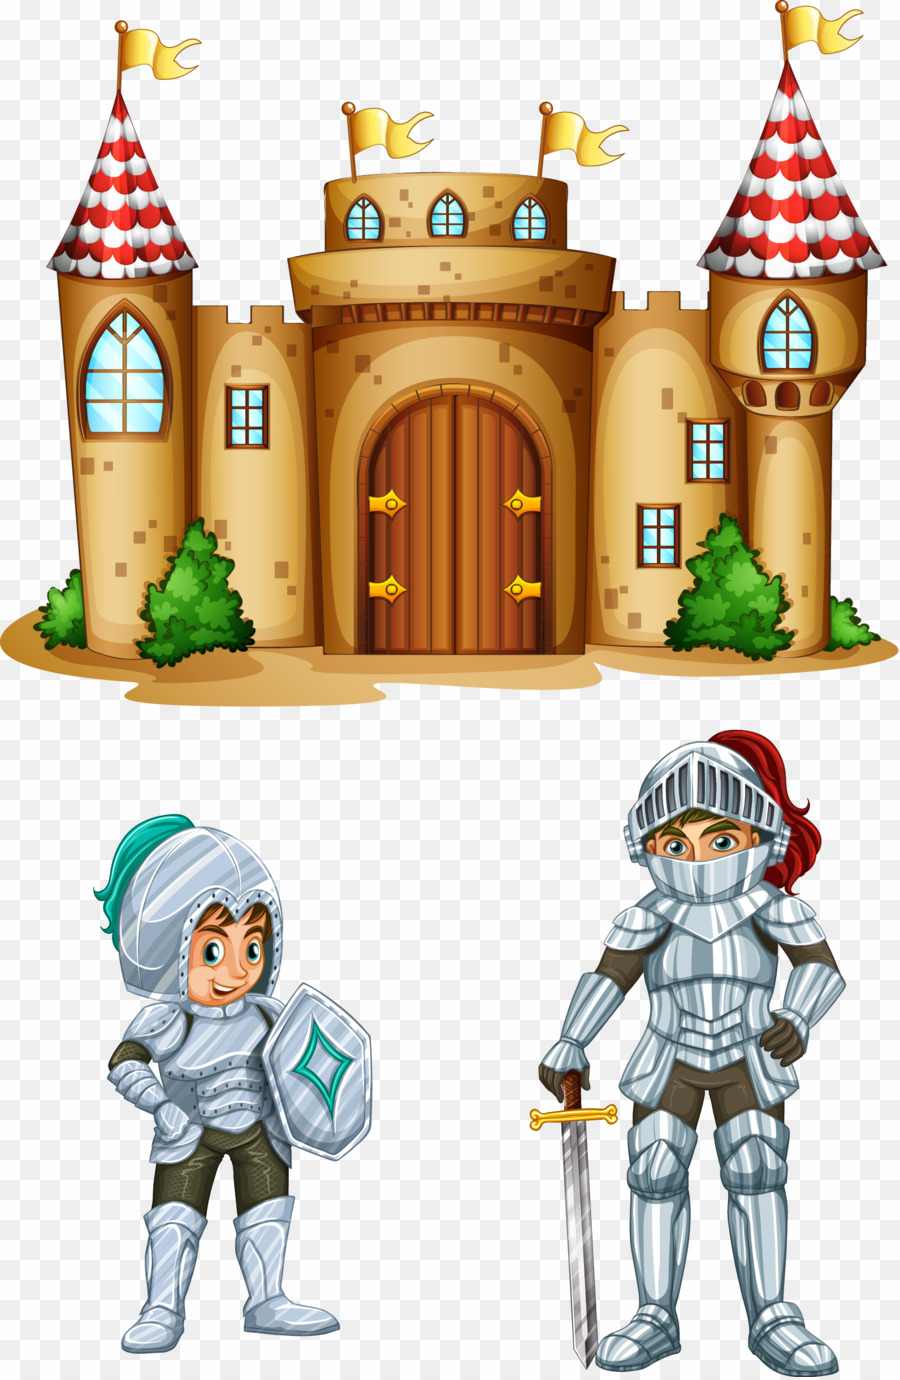 Cartoon png download . Castle clipart animated